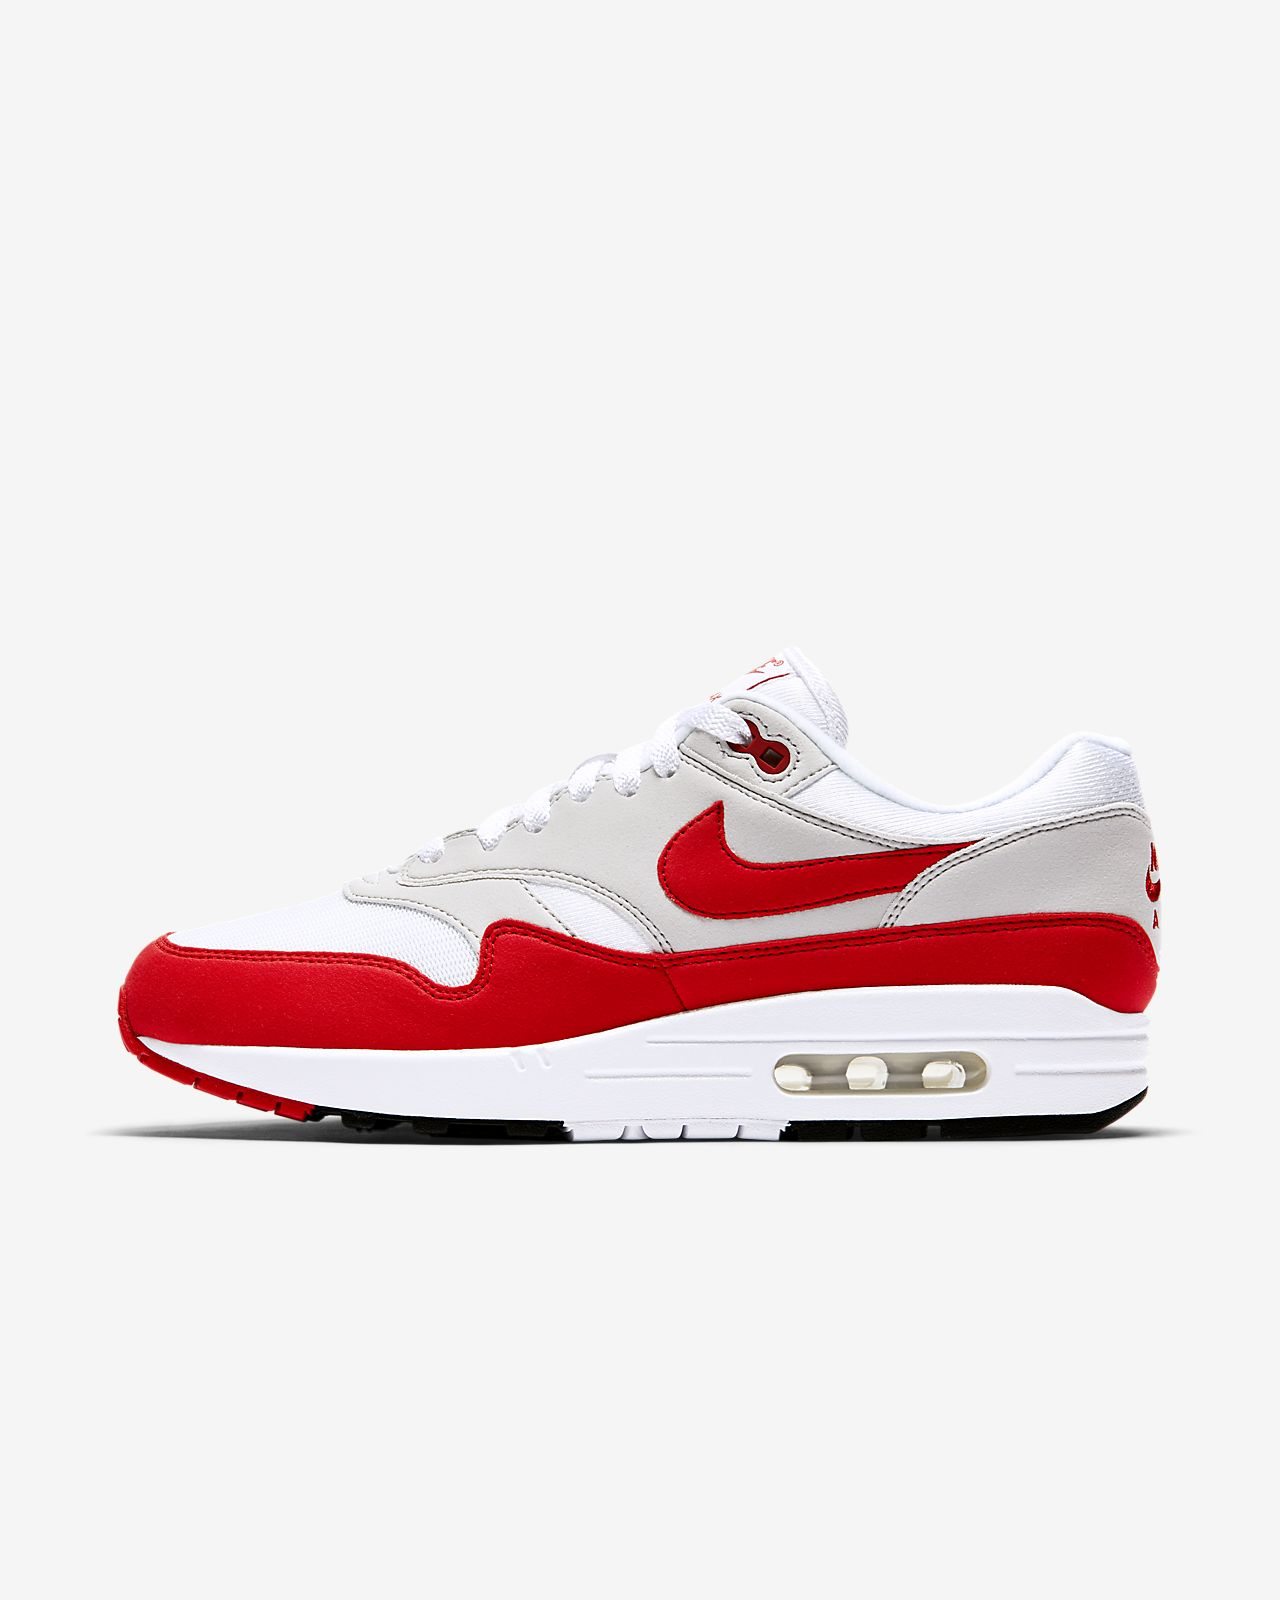 nike air max 1 anniversary men's shoe